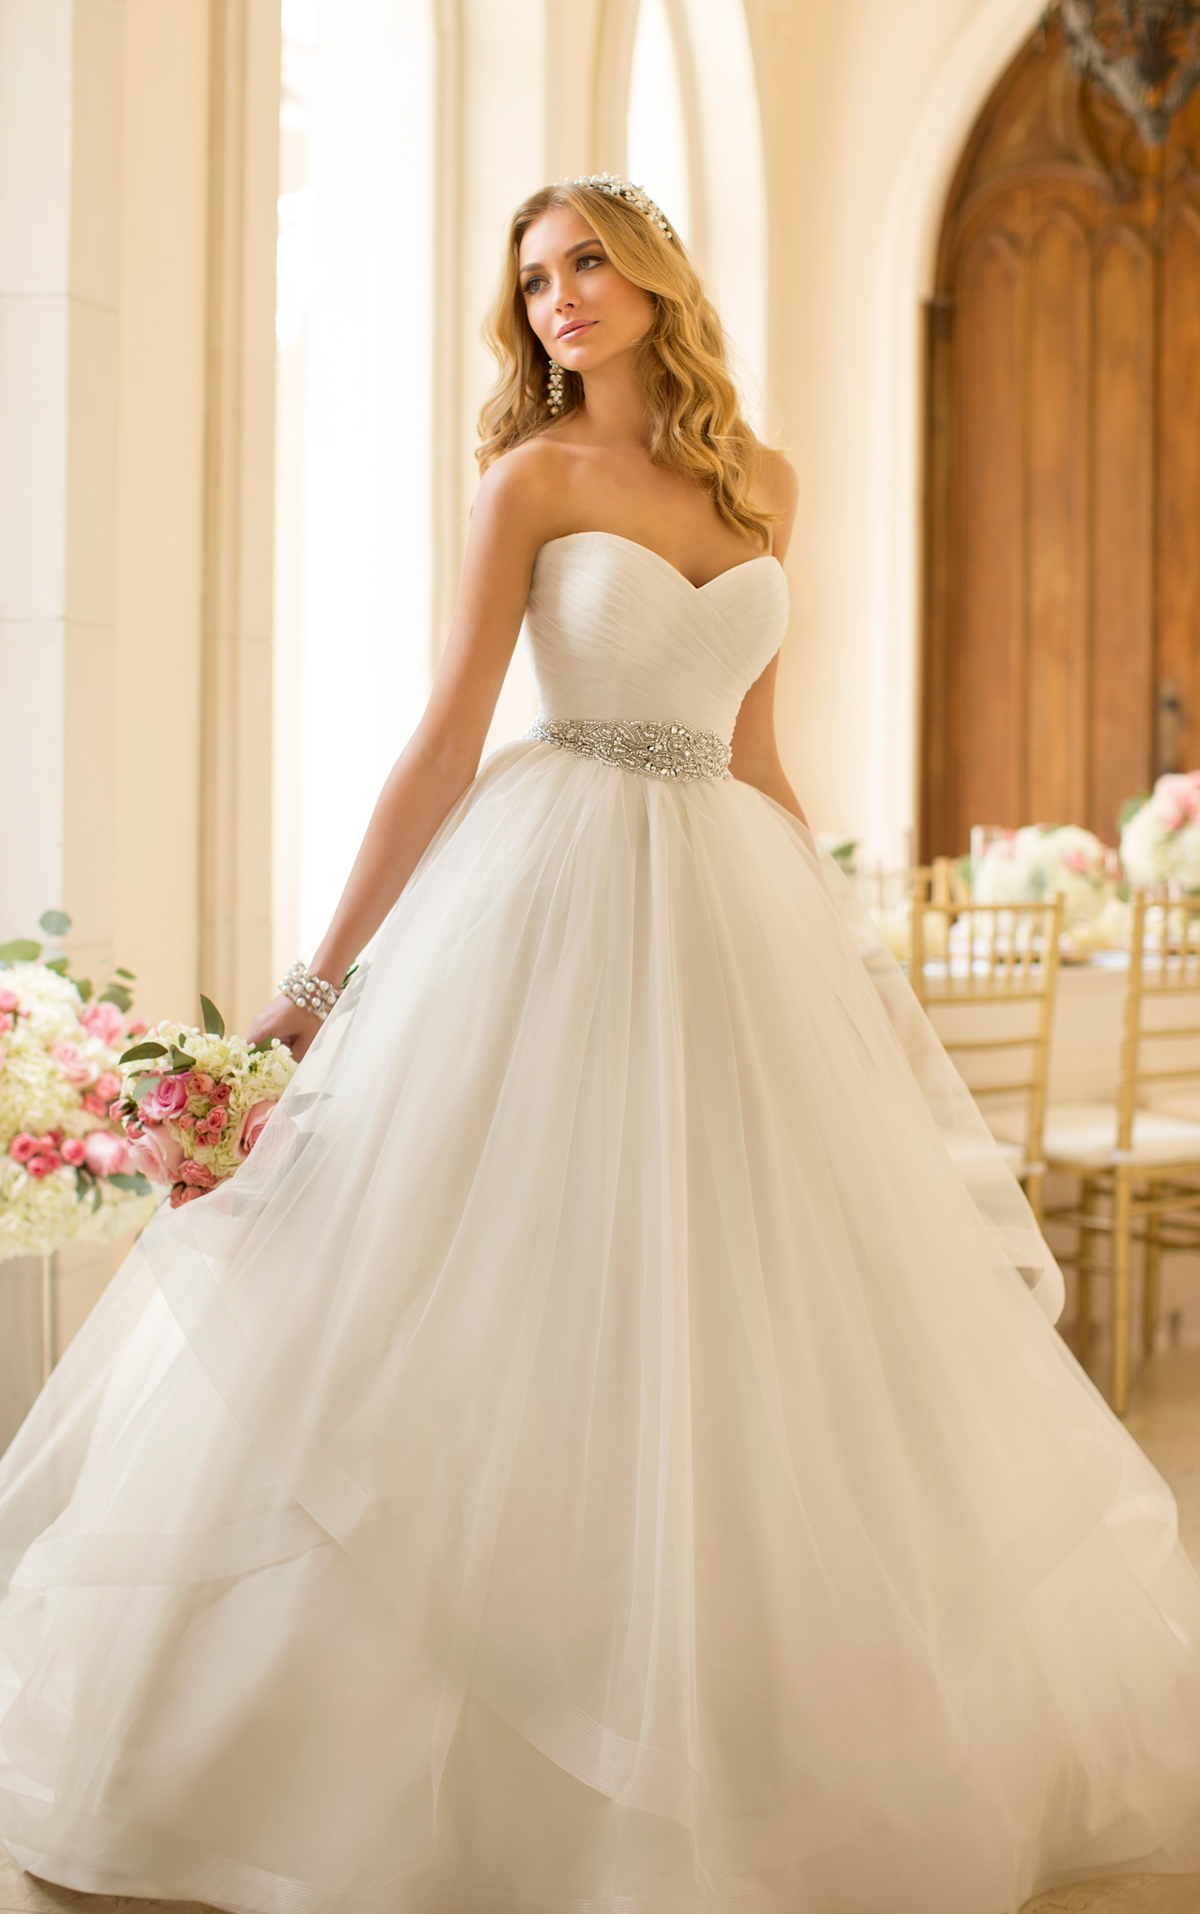 Extravagant Princess Wedding Dresses : Glamorous stella york wedding dresses collection